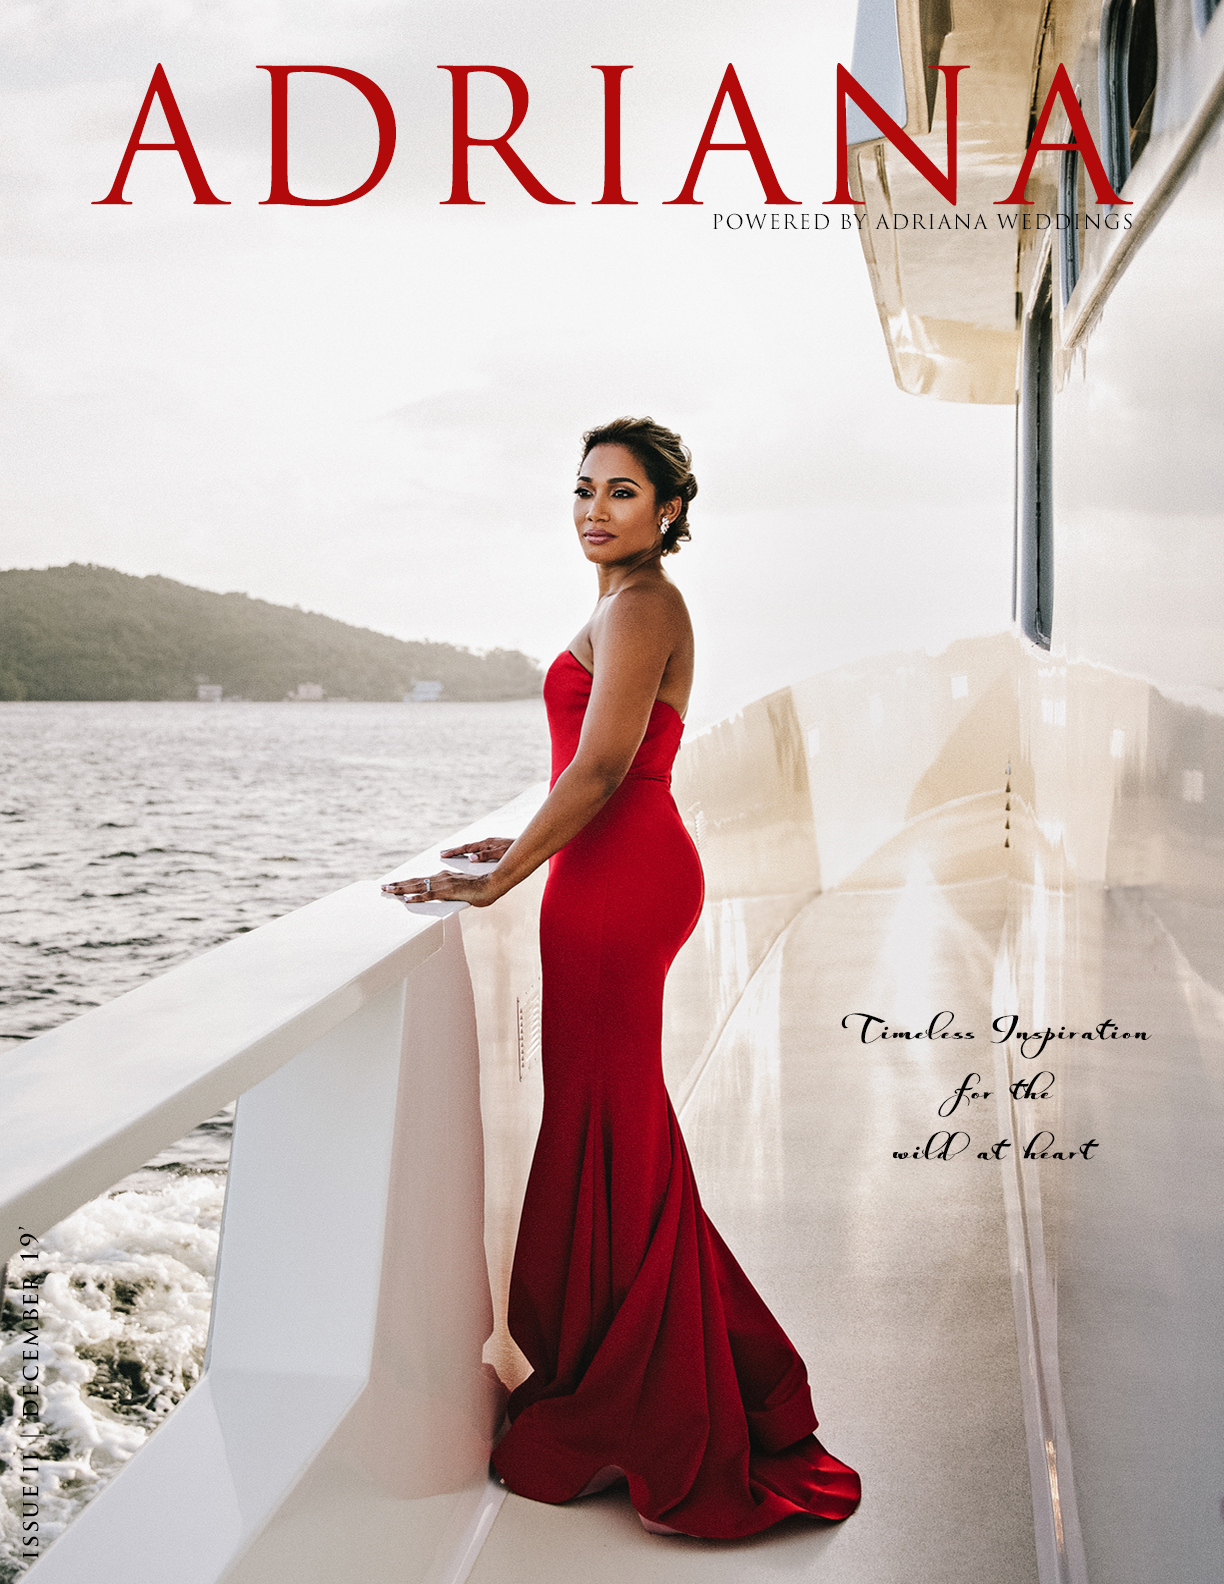 ADRIANA Issue II - Wild At Heart, Photography by Julie Charlett Photography, Wedding Dress by Van der Vlugt